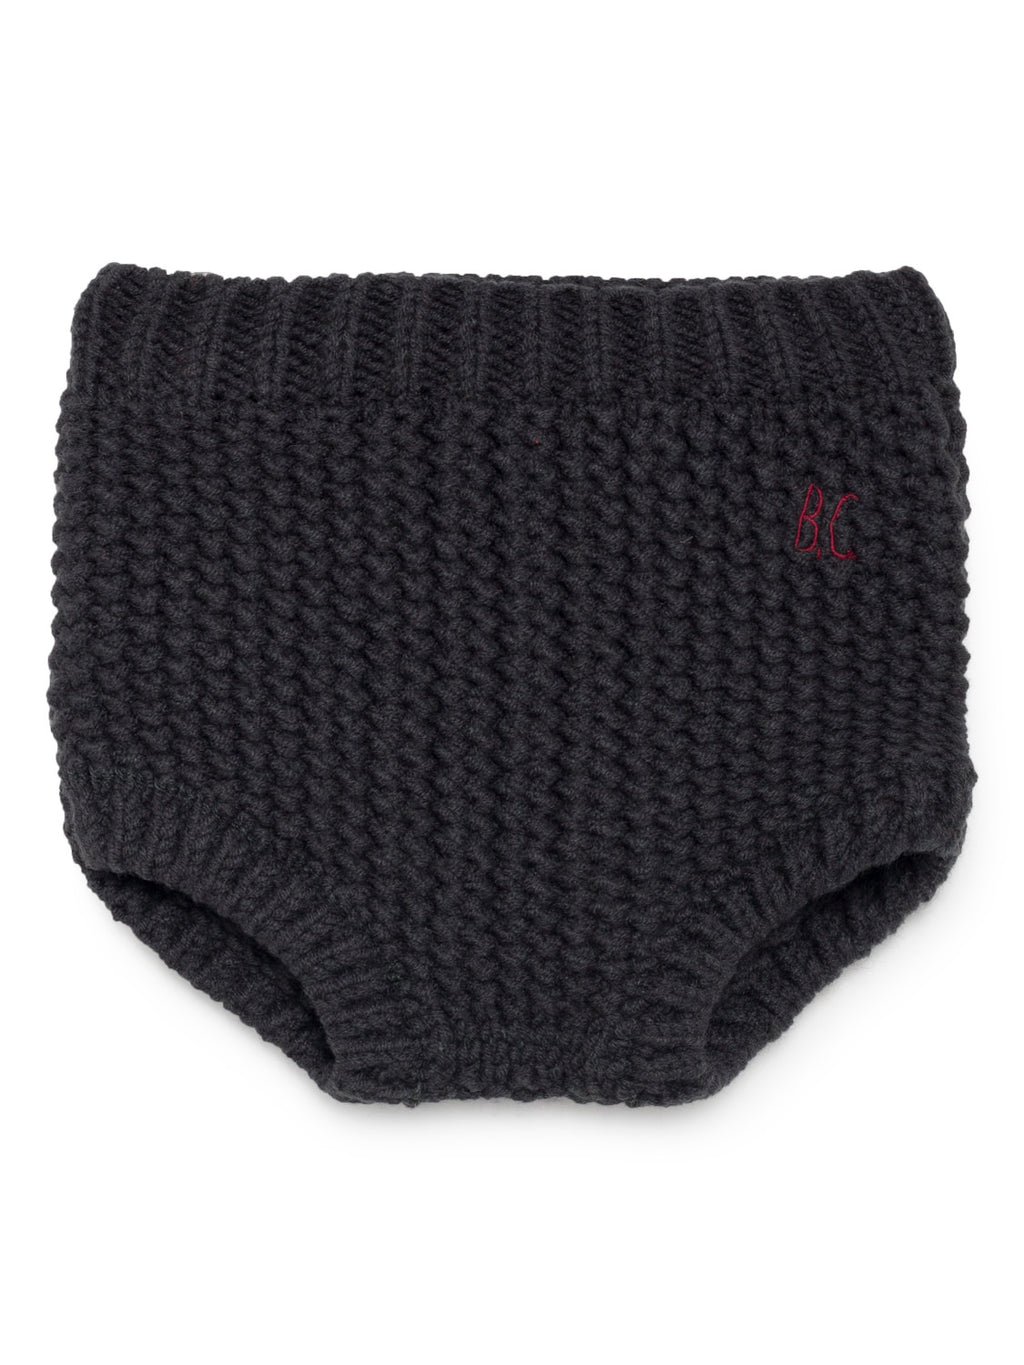 Bobo Choses - Black Knitted Culotte